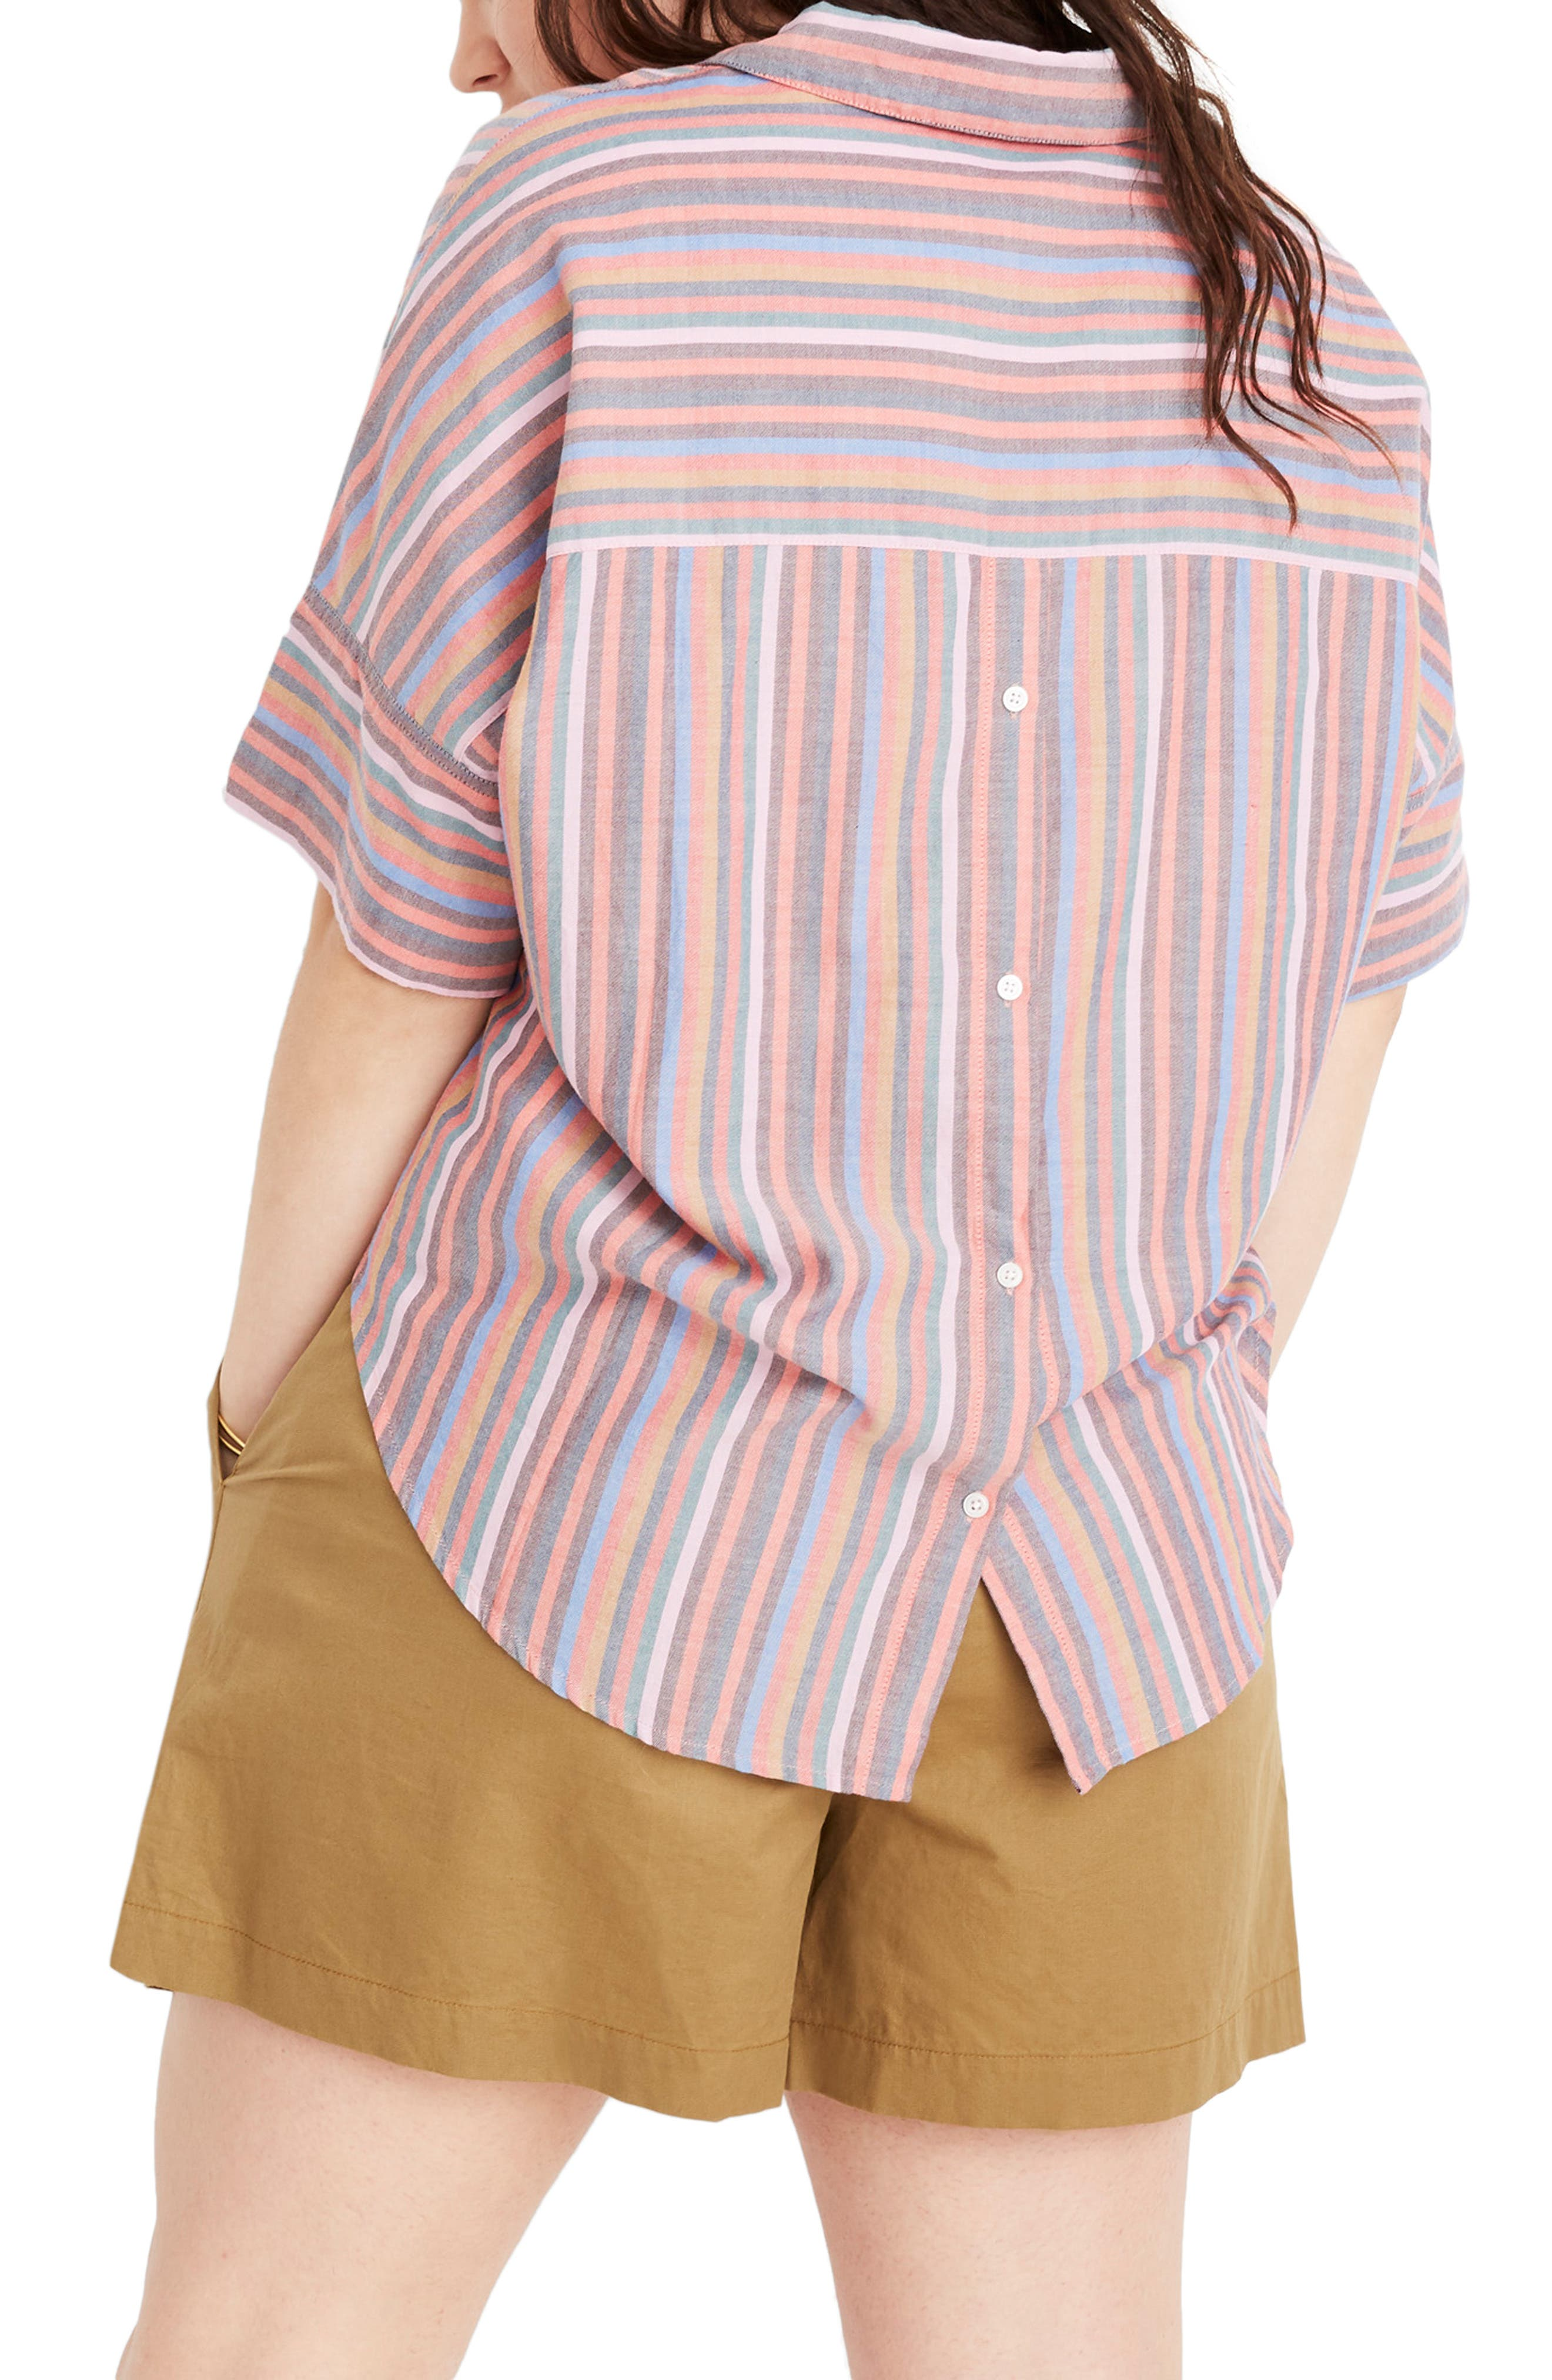 MADEWELL, Courier Rainbow Stripe Button Back Shirt, Alternate thumbnail 6, color, MULLED WINE SMITH STRIPE